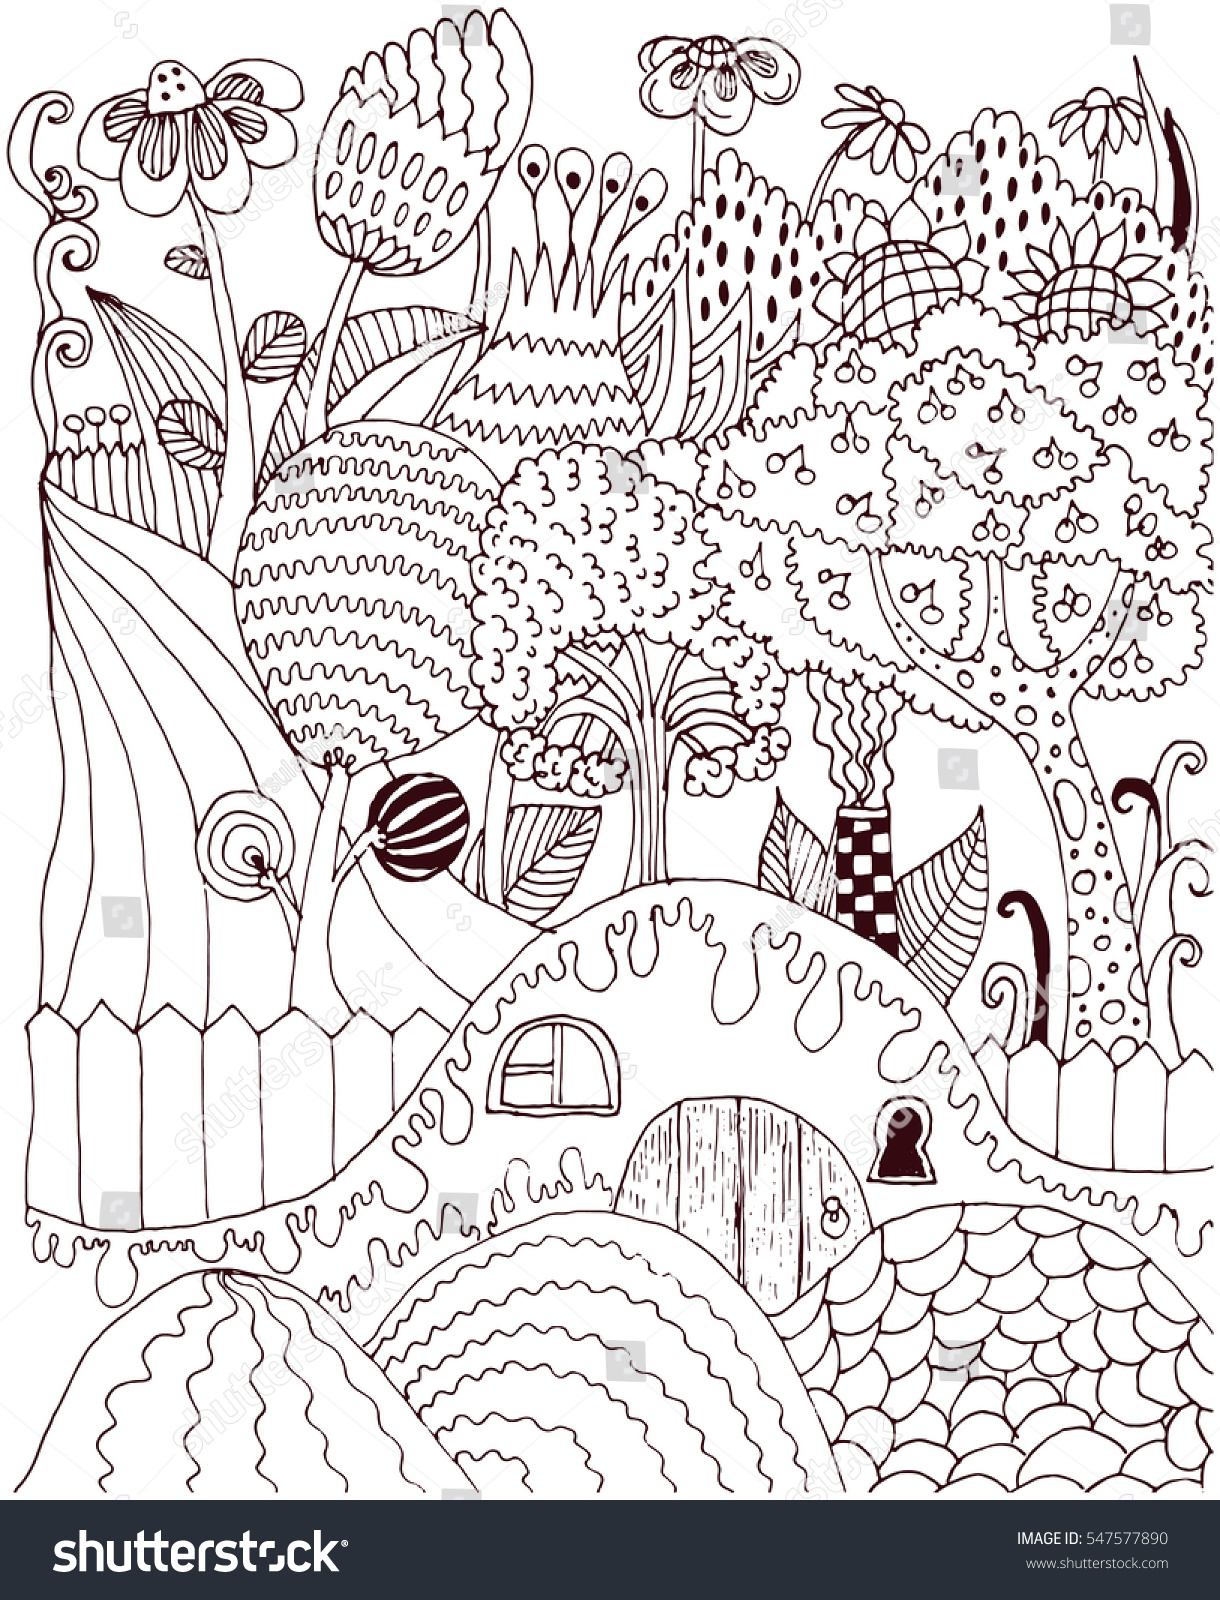 vector cute coloring illustration with miracle rustic scenery coloring book image art therapy - Cute Coloring Books